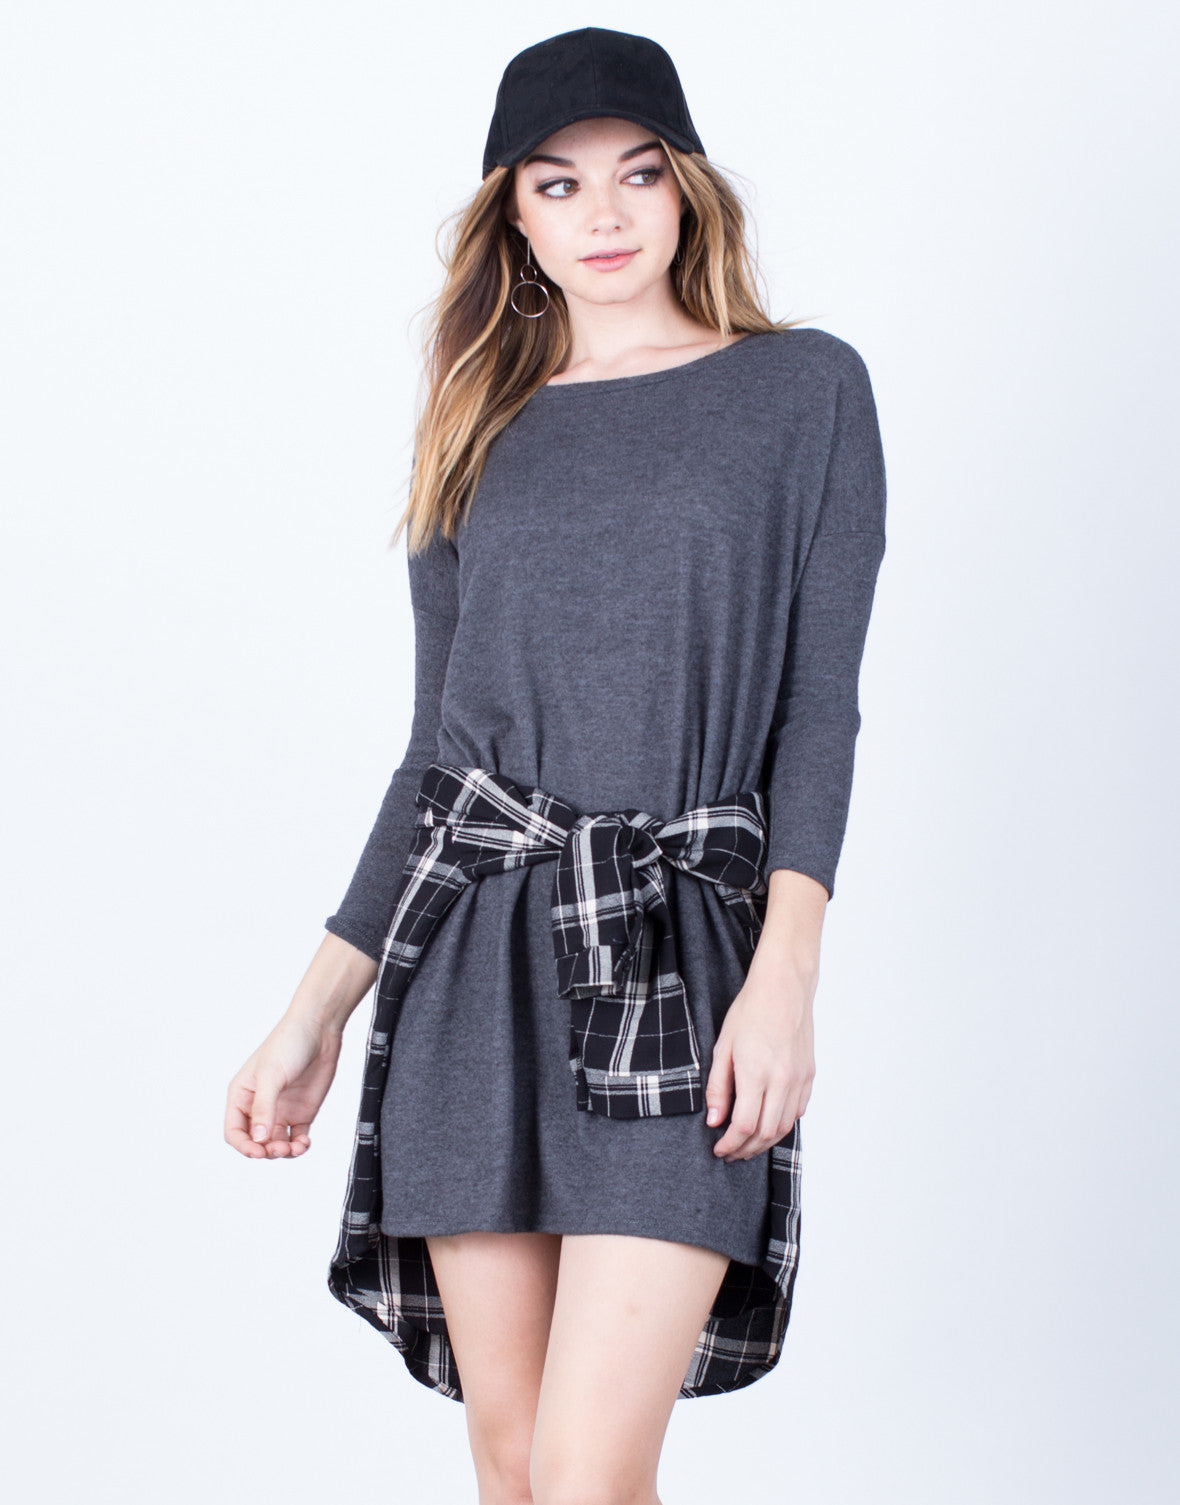 Front View of Relaxed Knit Dress